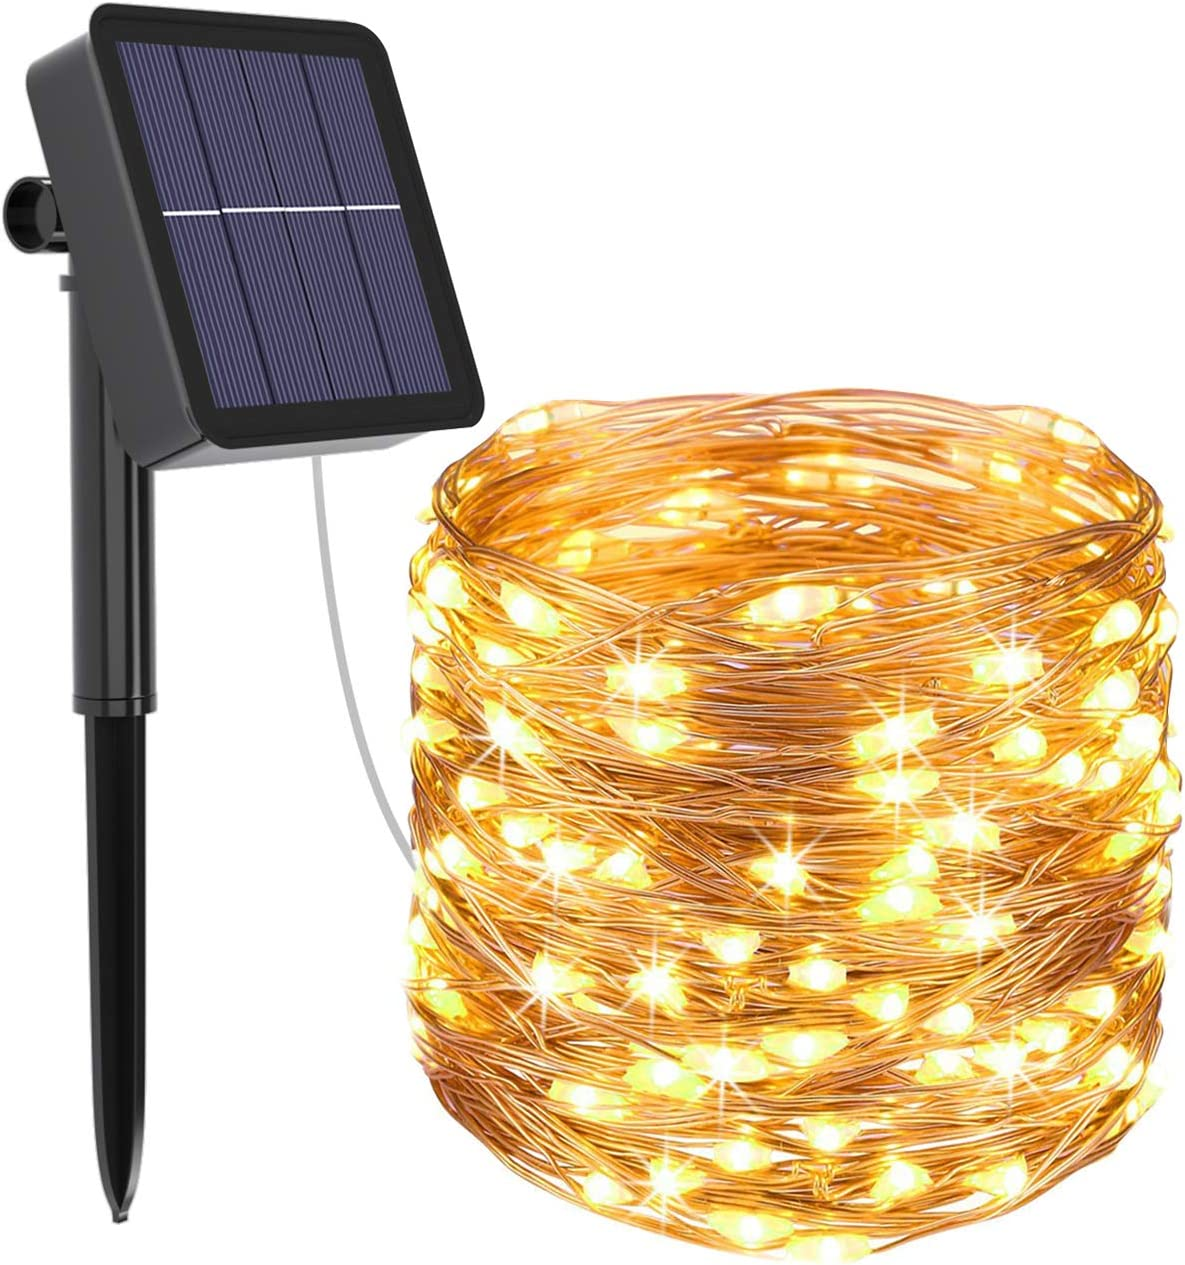 100 LED Solar Fairy String Light Copper Wire Outdoor Waterproof Garden Decor